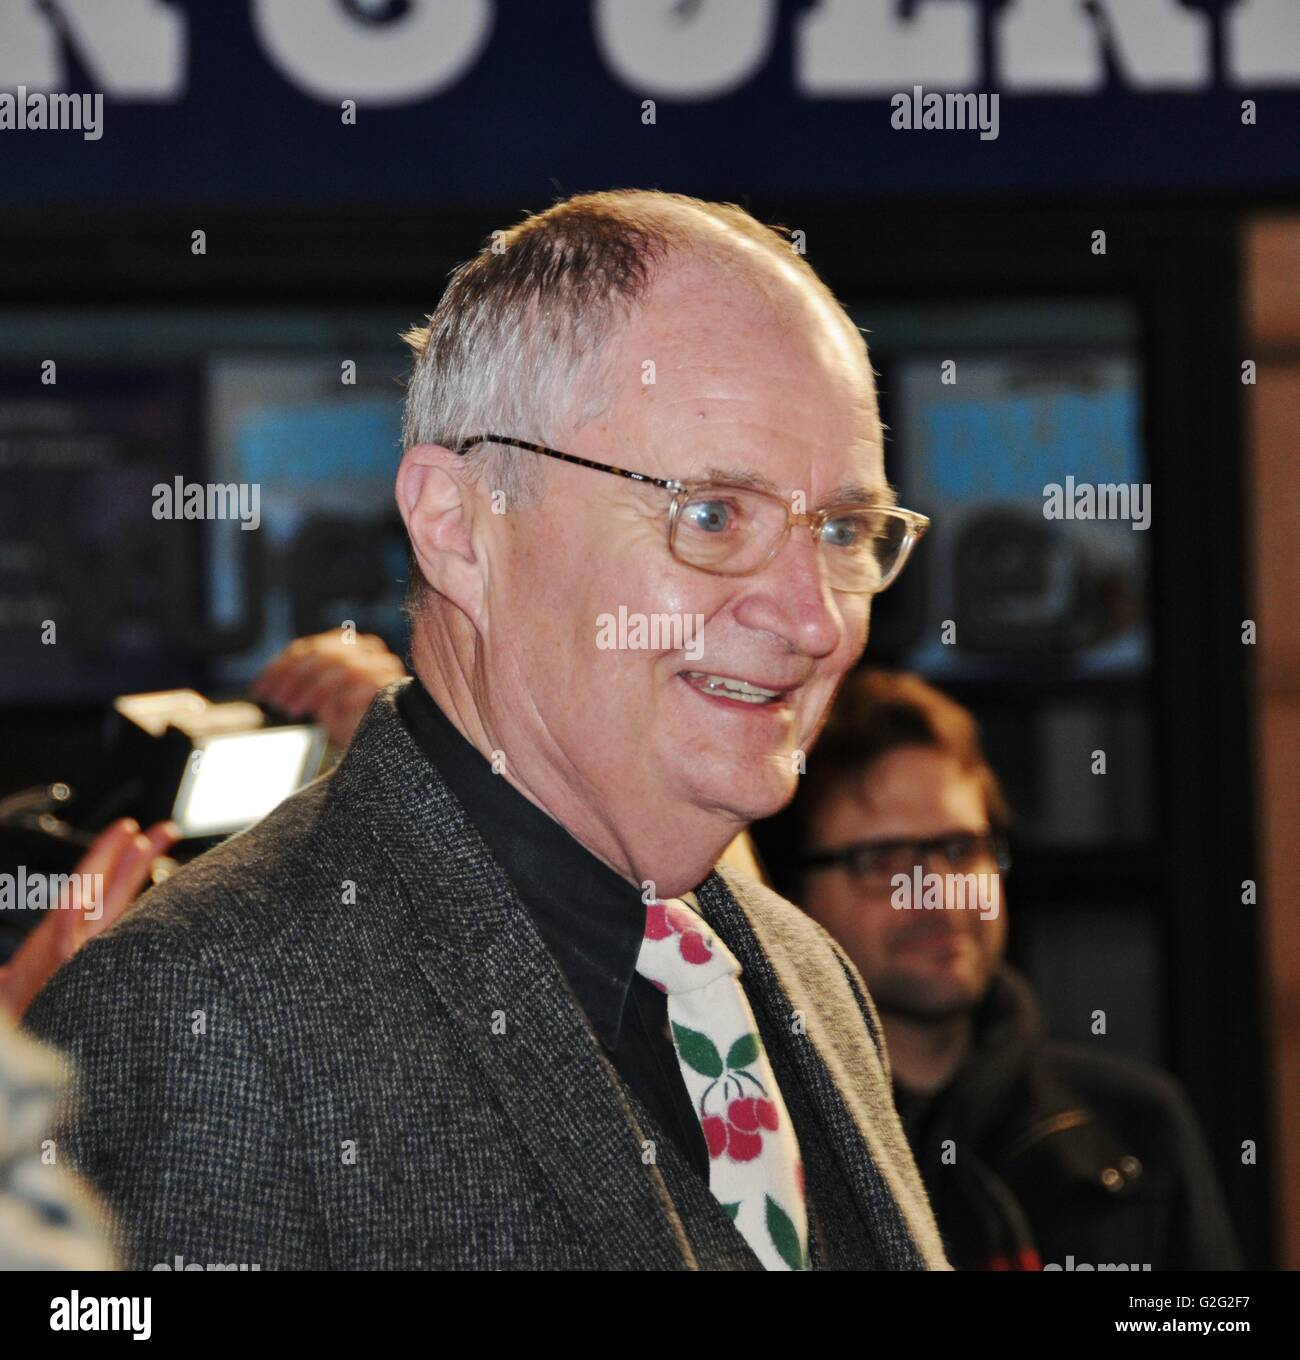 Oscar winning actor Jim Broadbent, at the London premiere of Harry Hill The Movie. - Stock Image